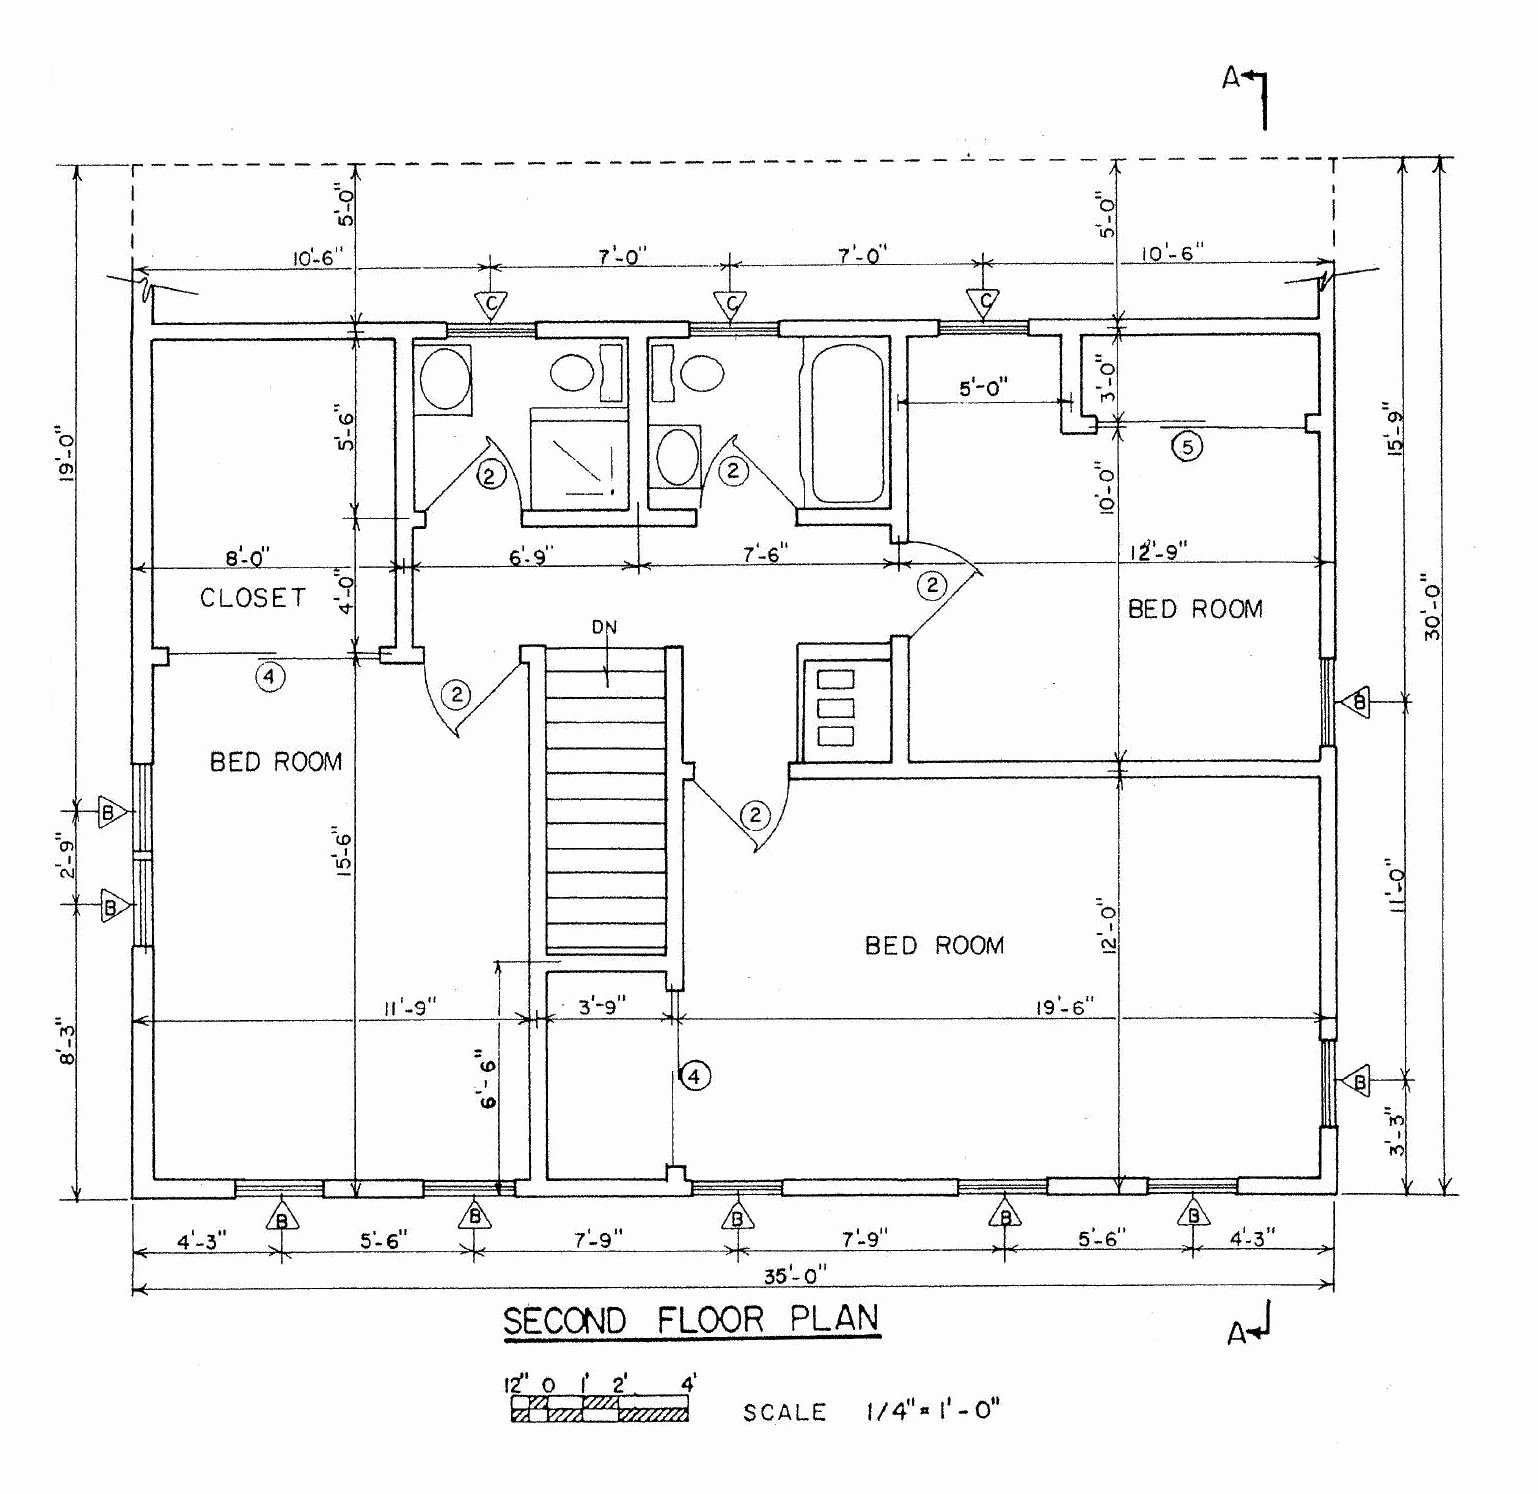 Blank Floor Plan Template New Unique Blank Floor Plan Templates S Home House